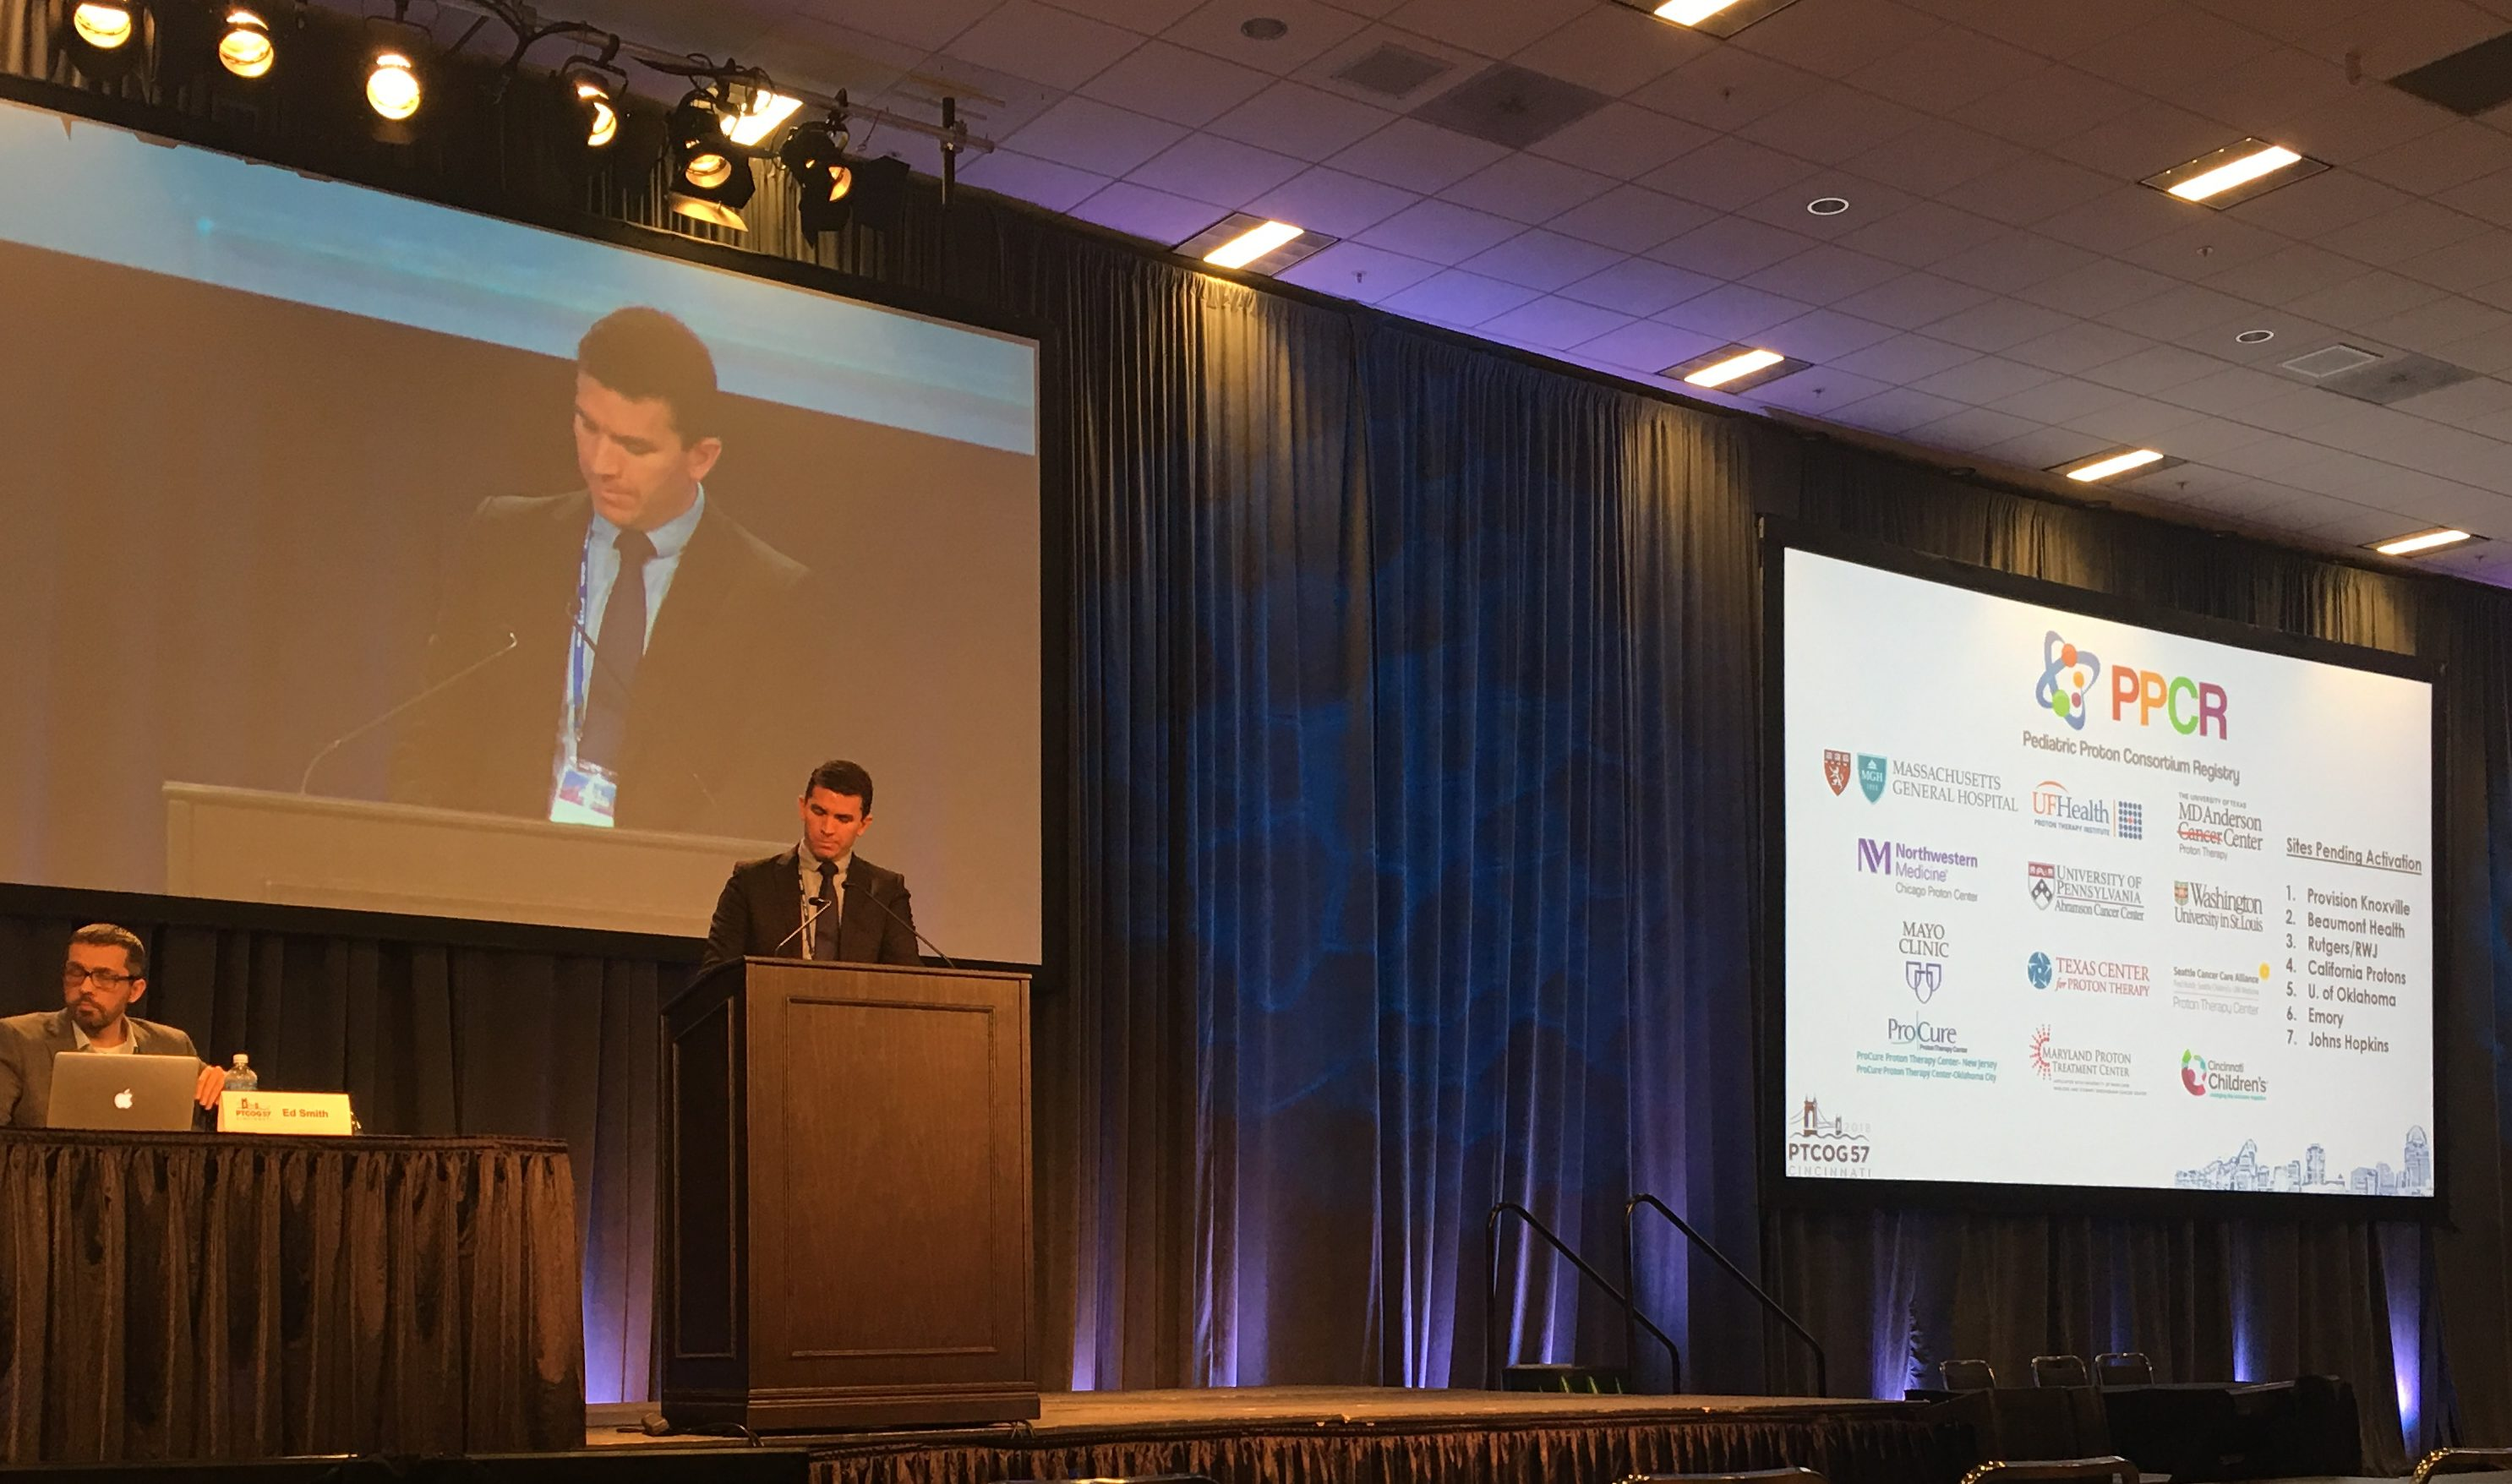 Former Pediatric Proton Fellow Clayton Hess, MD Presenting PPCR Data at PTCOG 2018